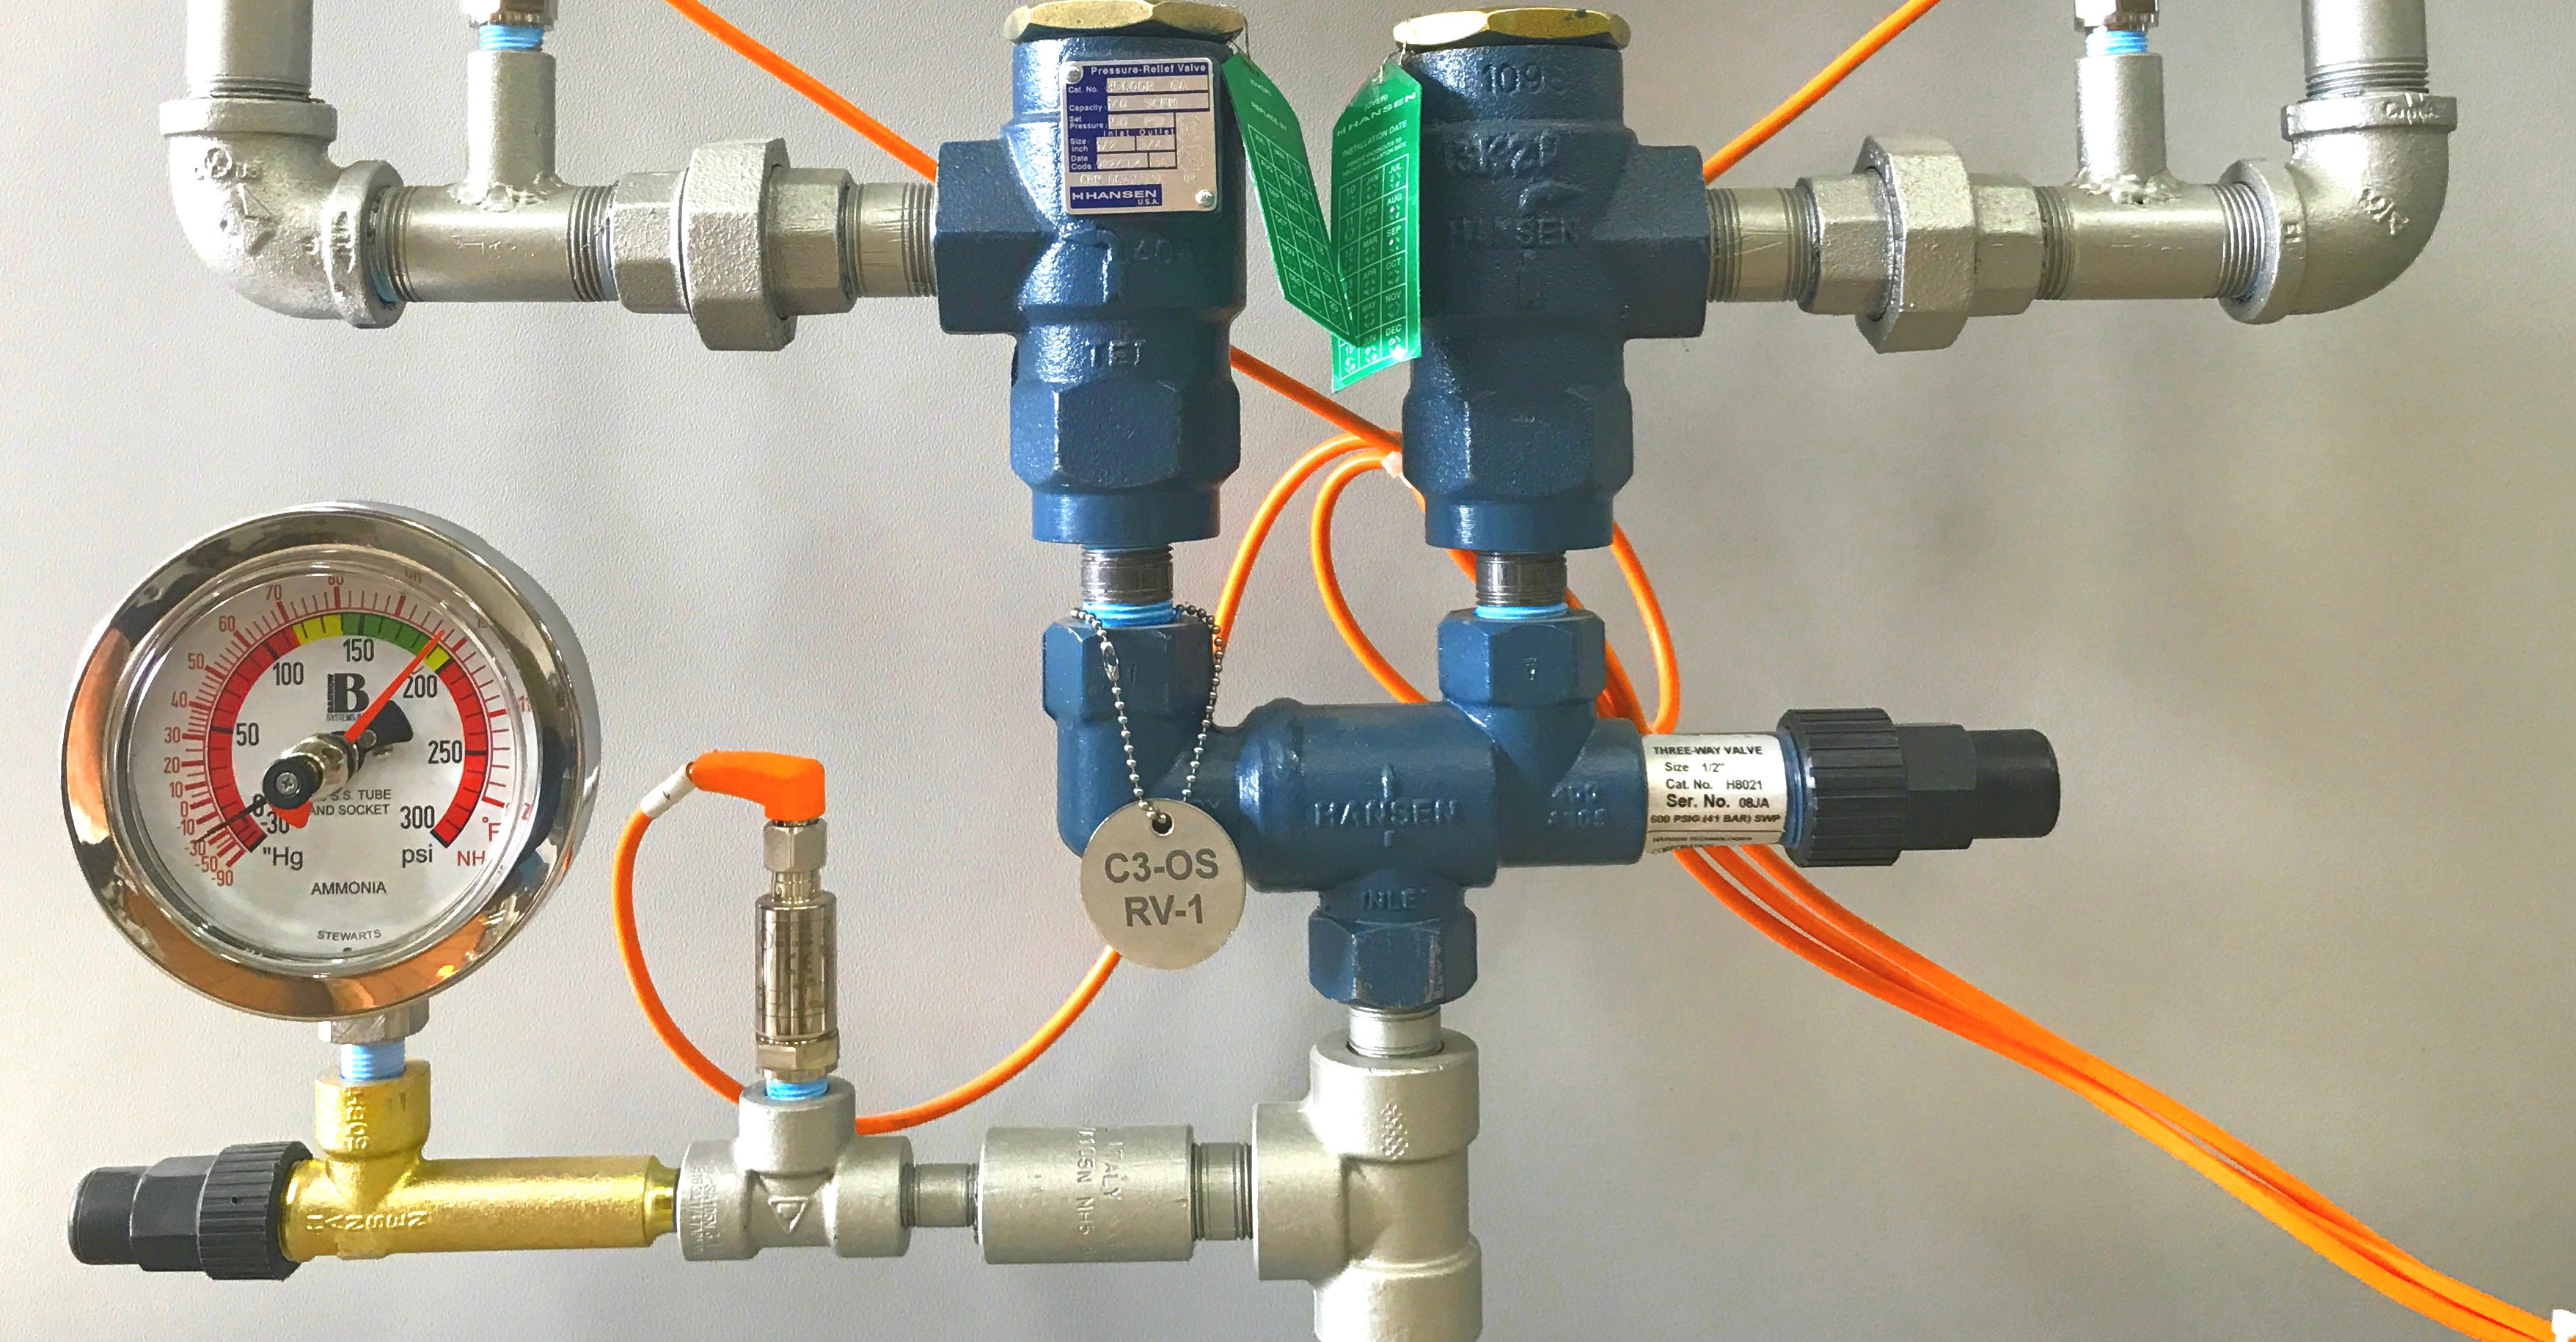 refrigerant-relief-valve-monitoring-reporting-system